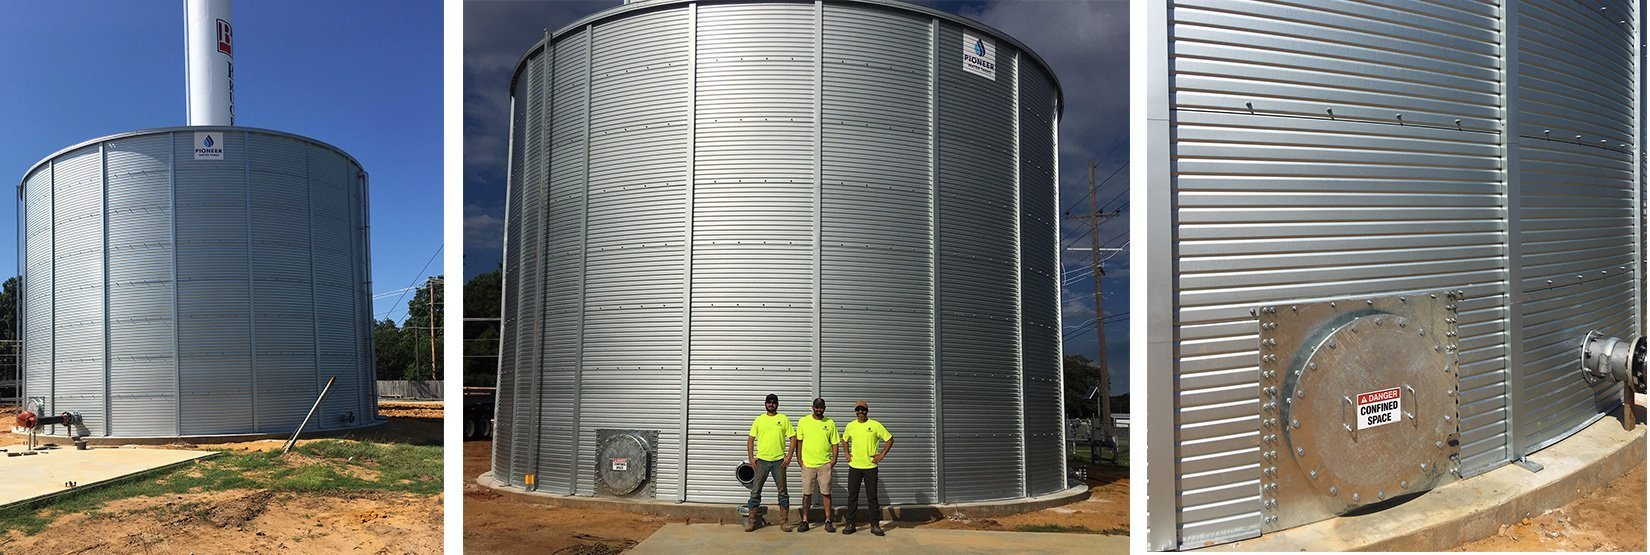 Pioneer Water Tanks for fire protection in Oklahoma